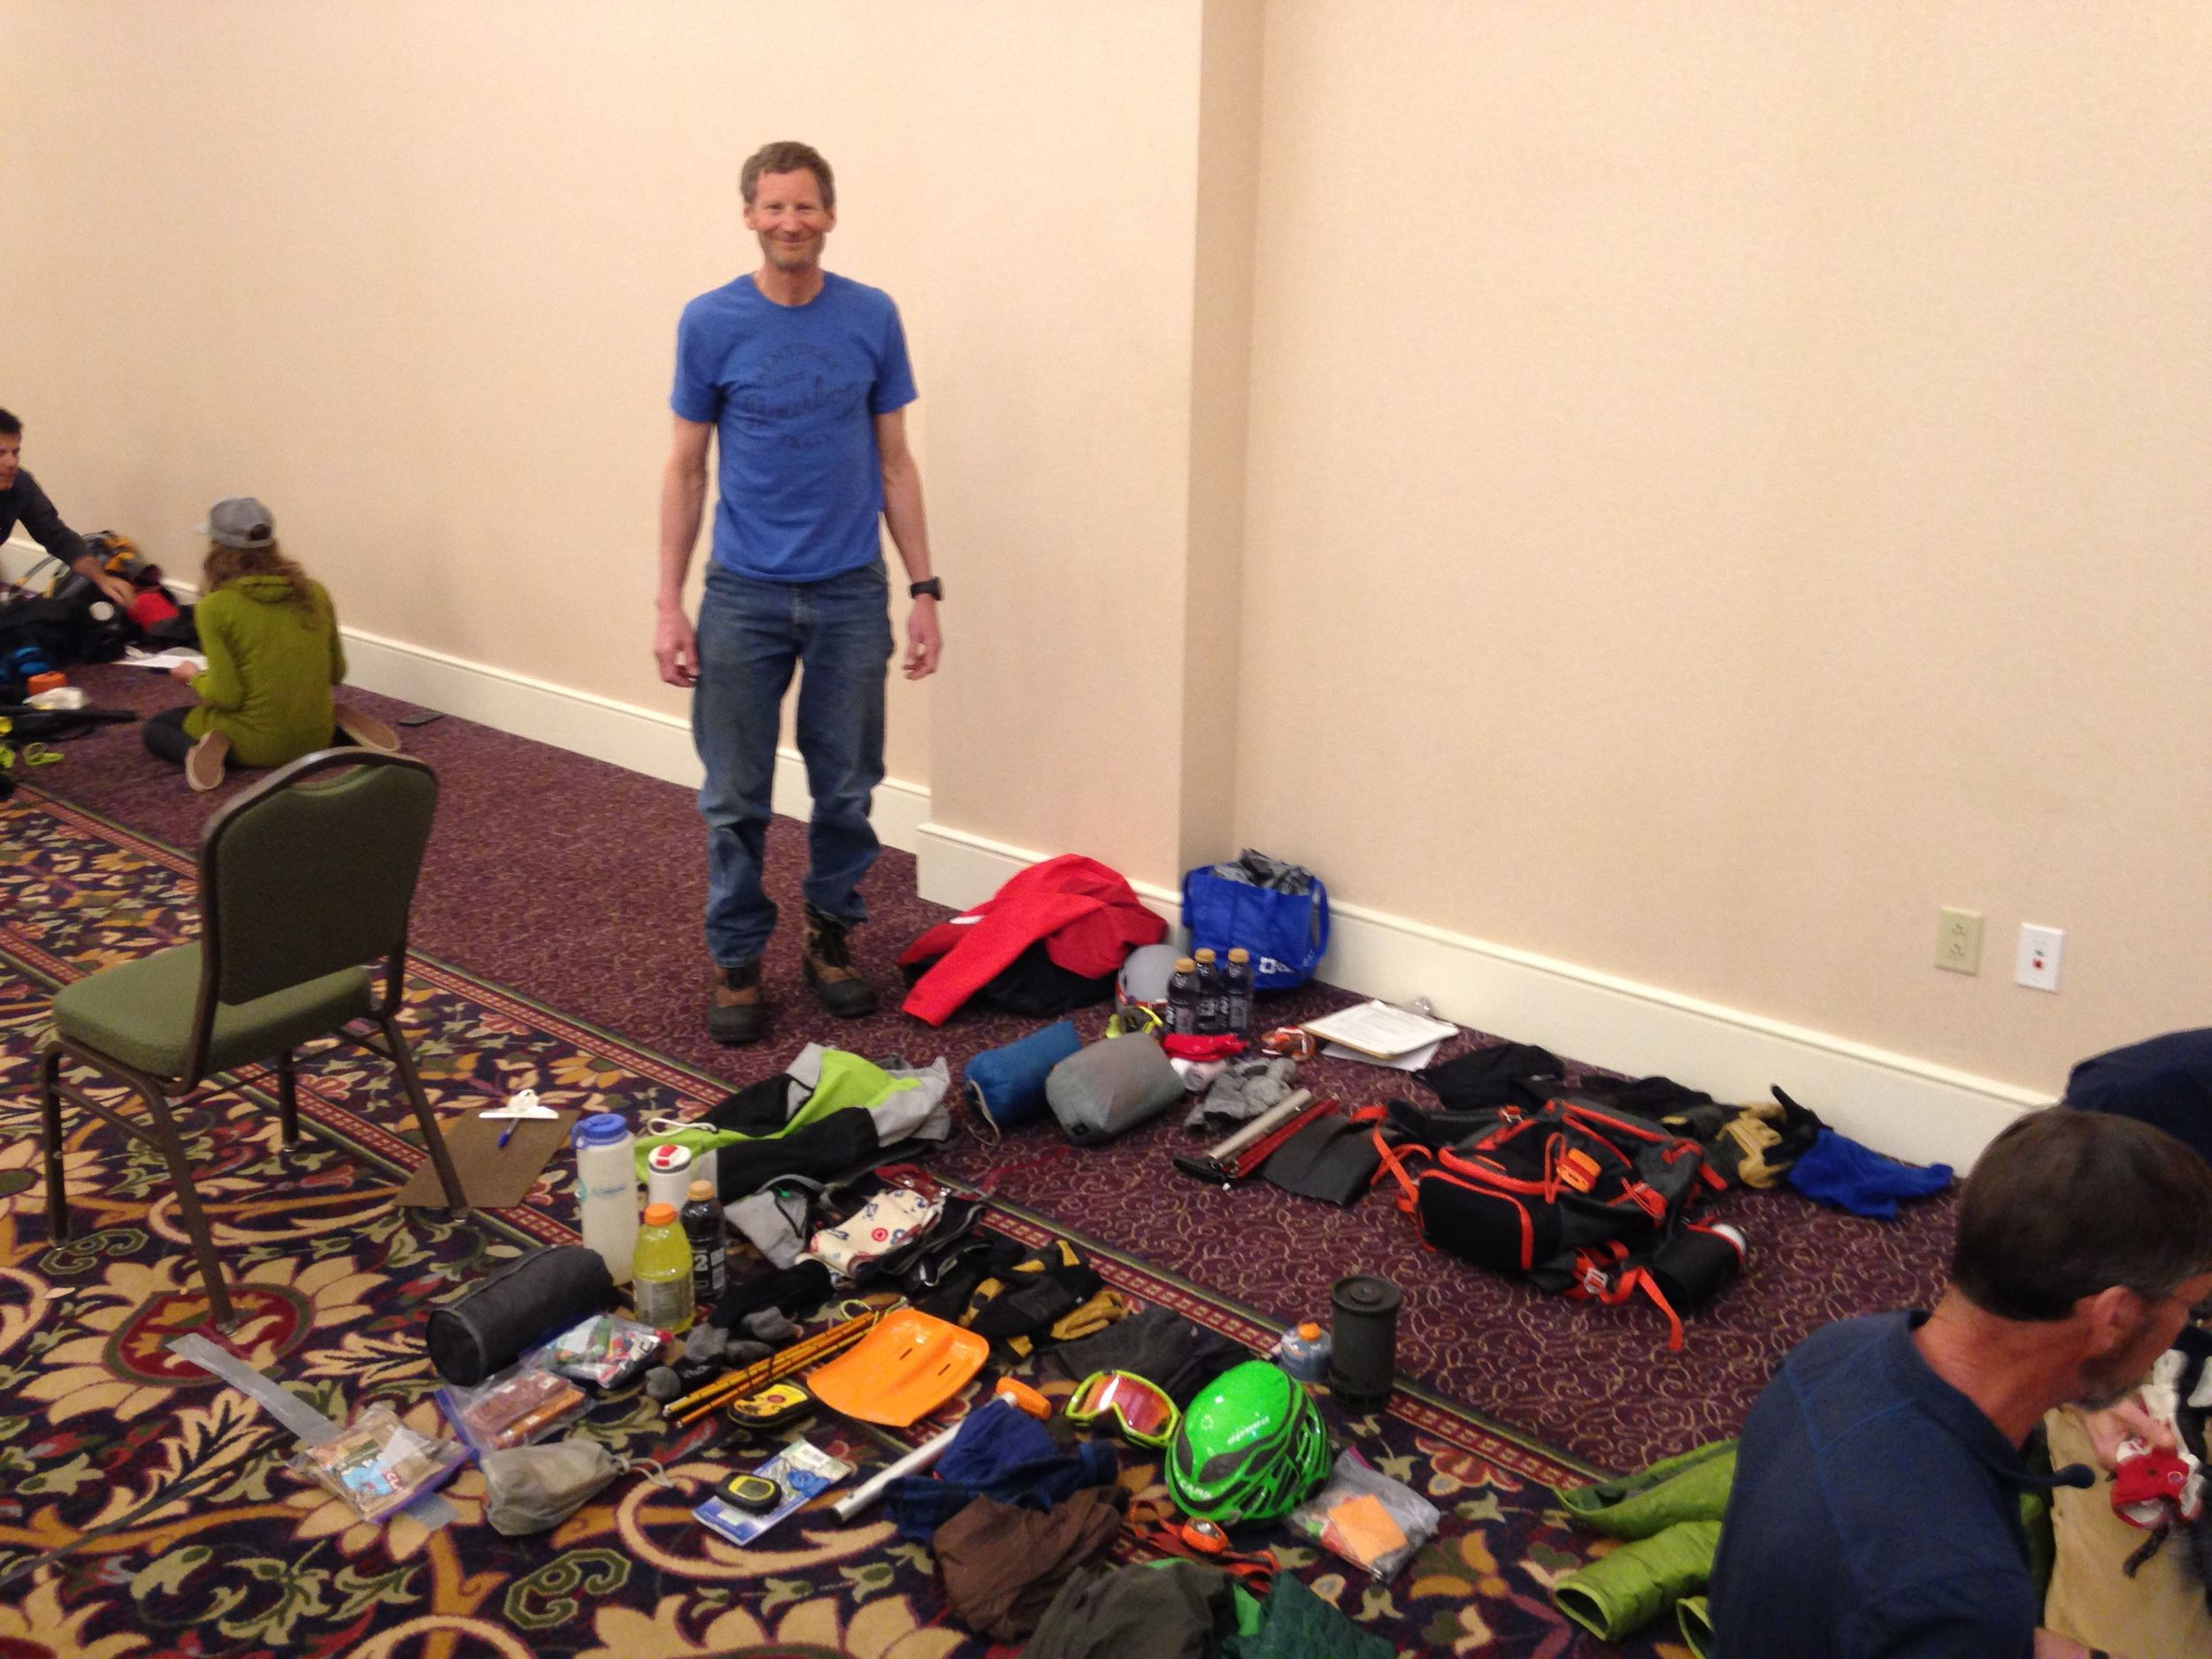 at the pre-race gear check. because of the difficult nature of the race, we were required to carry specific gear to survive up to 24 hours marooned at extreme temperature and altitude.